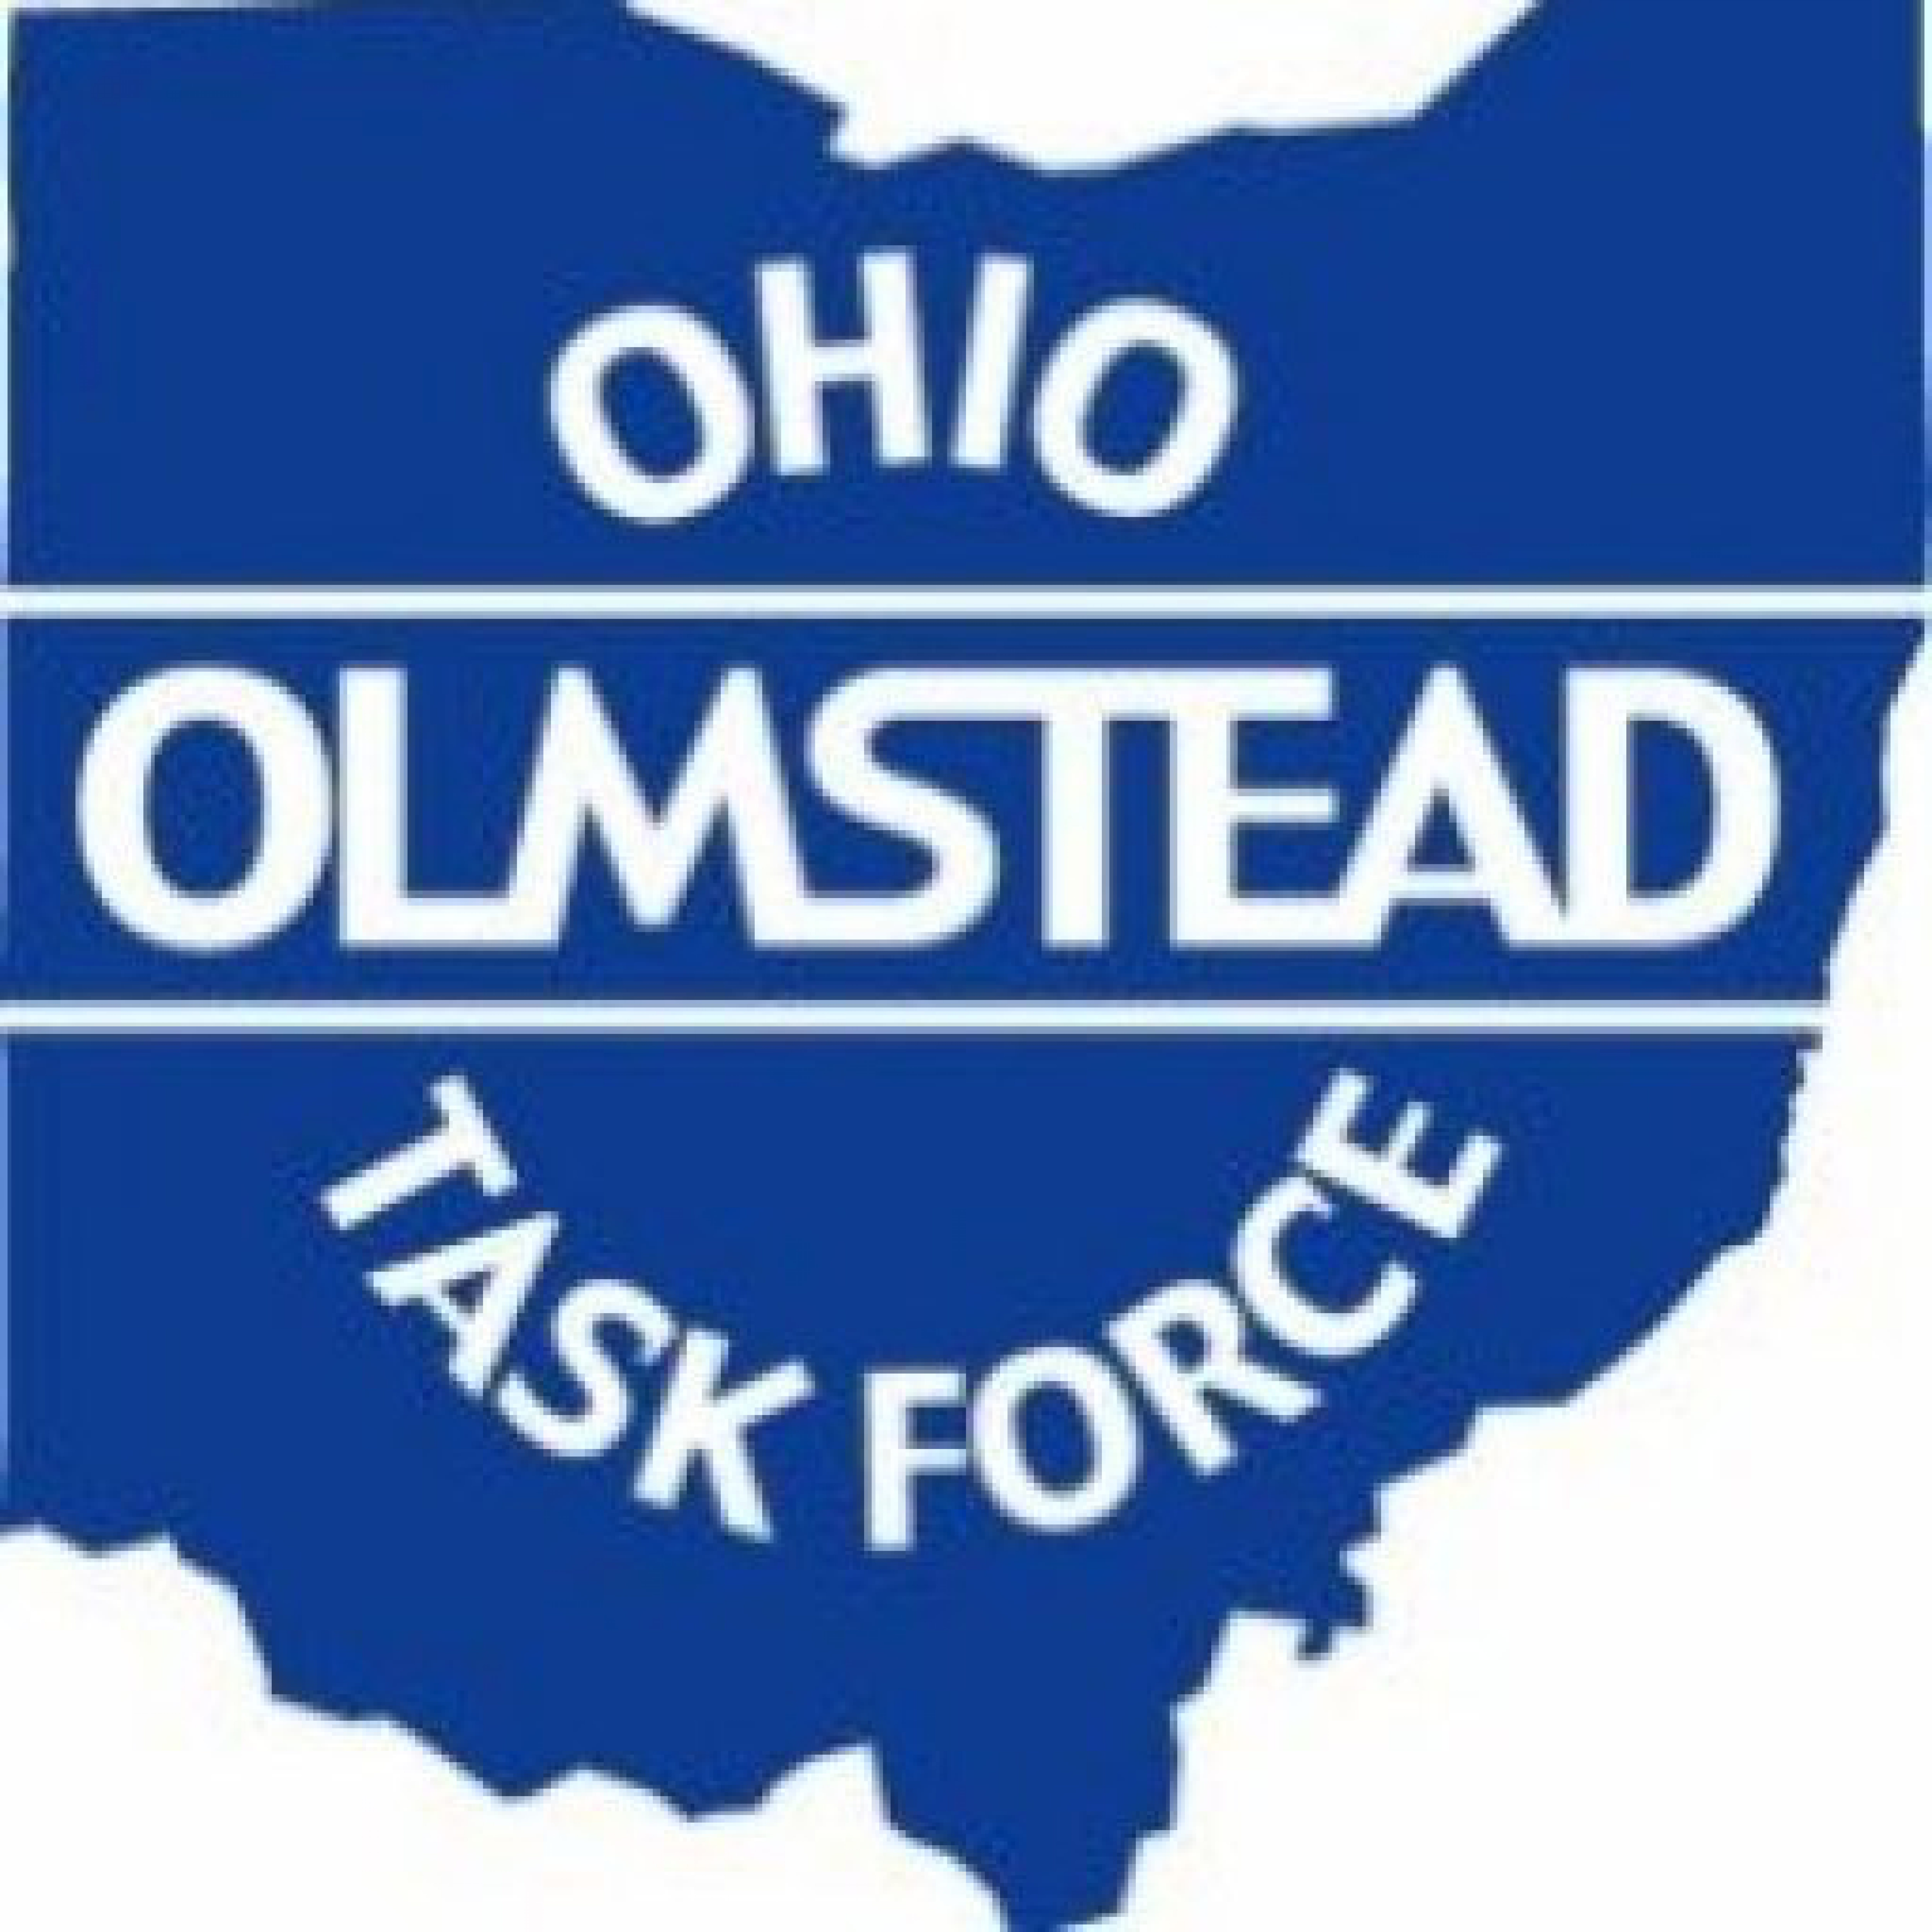 Ohio Olmstead Task Force